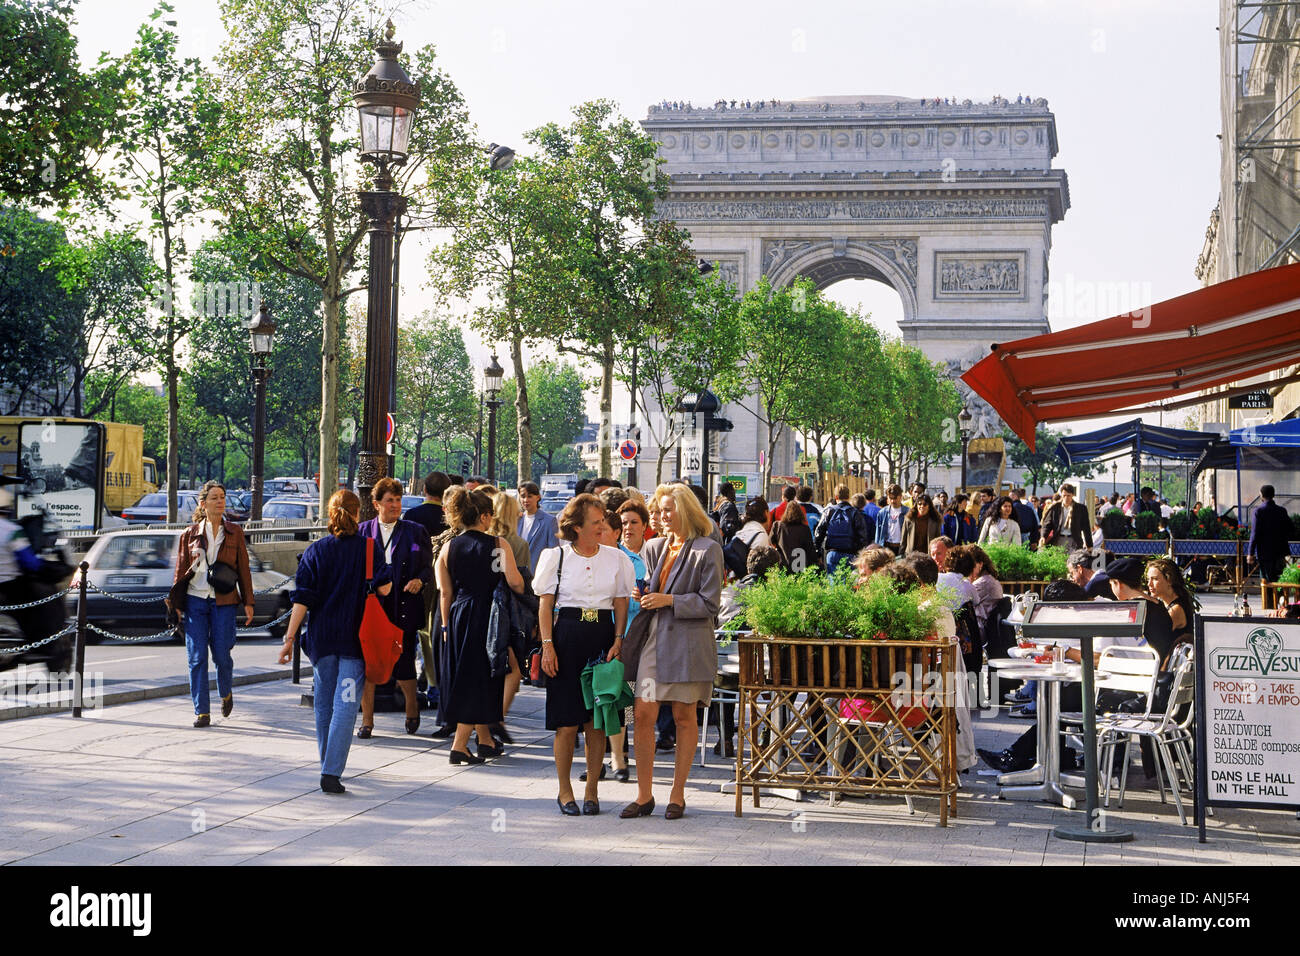 cafe on champs elysees with arc de triomphe in paris stock photo 2876915 alamy. Black Bedroom Furniture Sets. Home Design Ideas